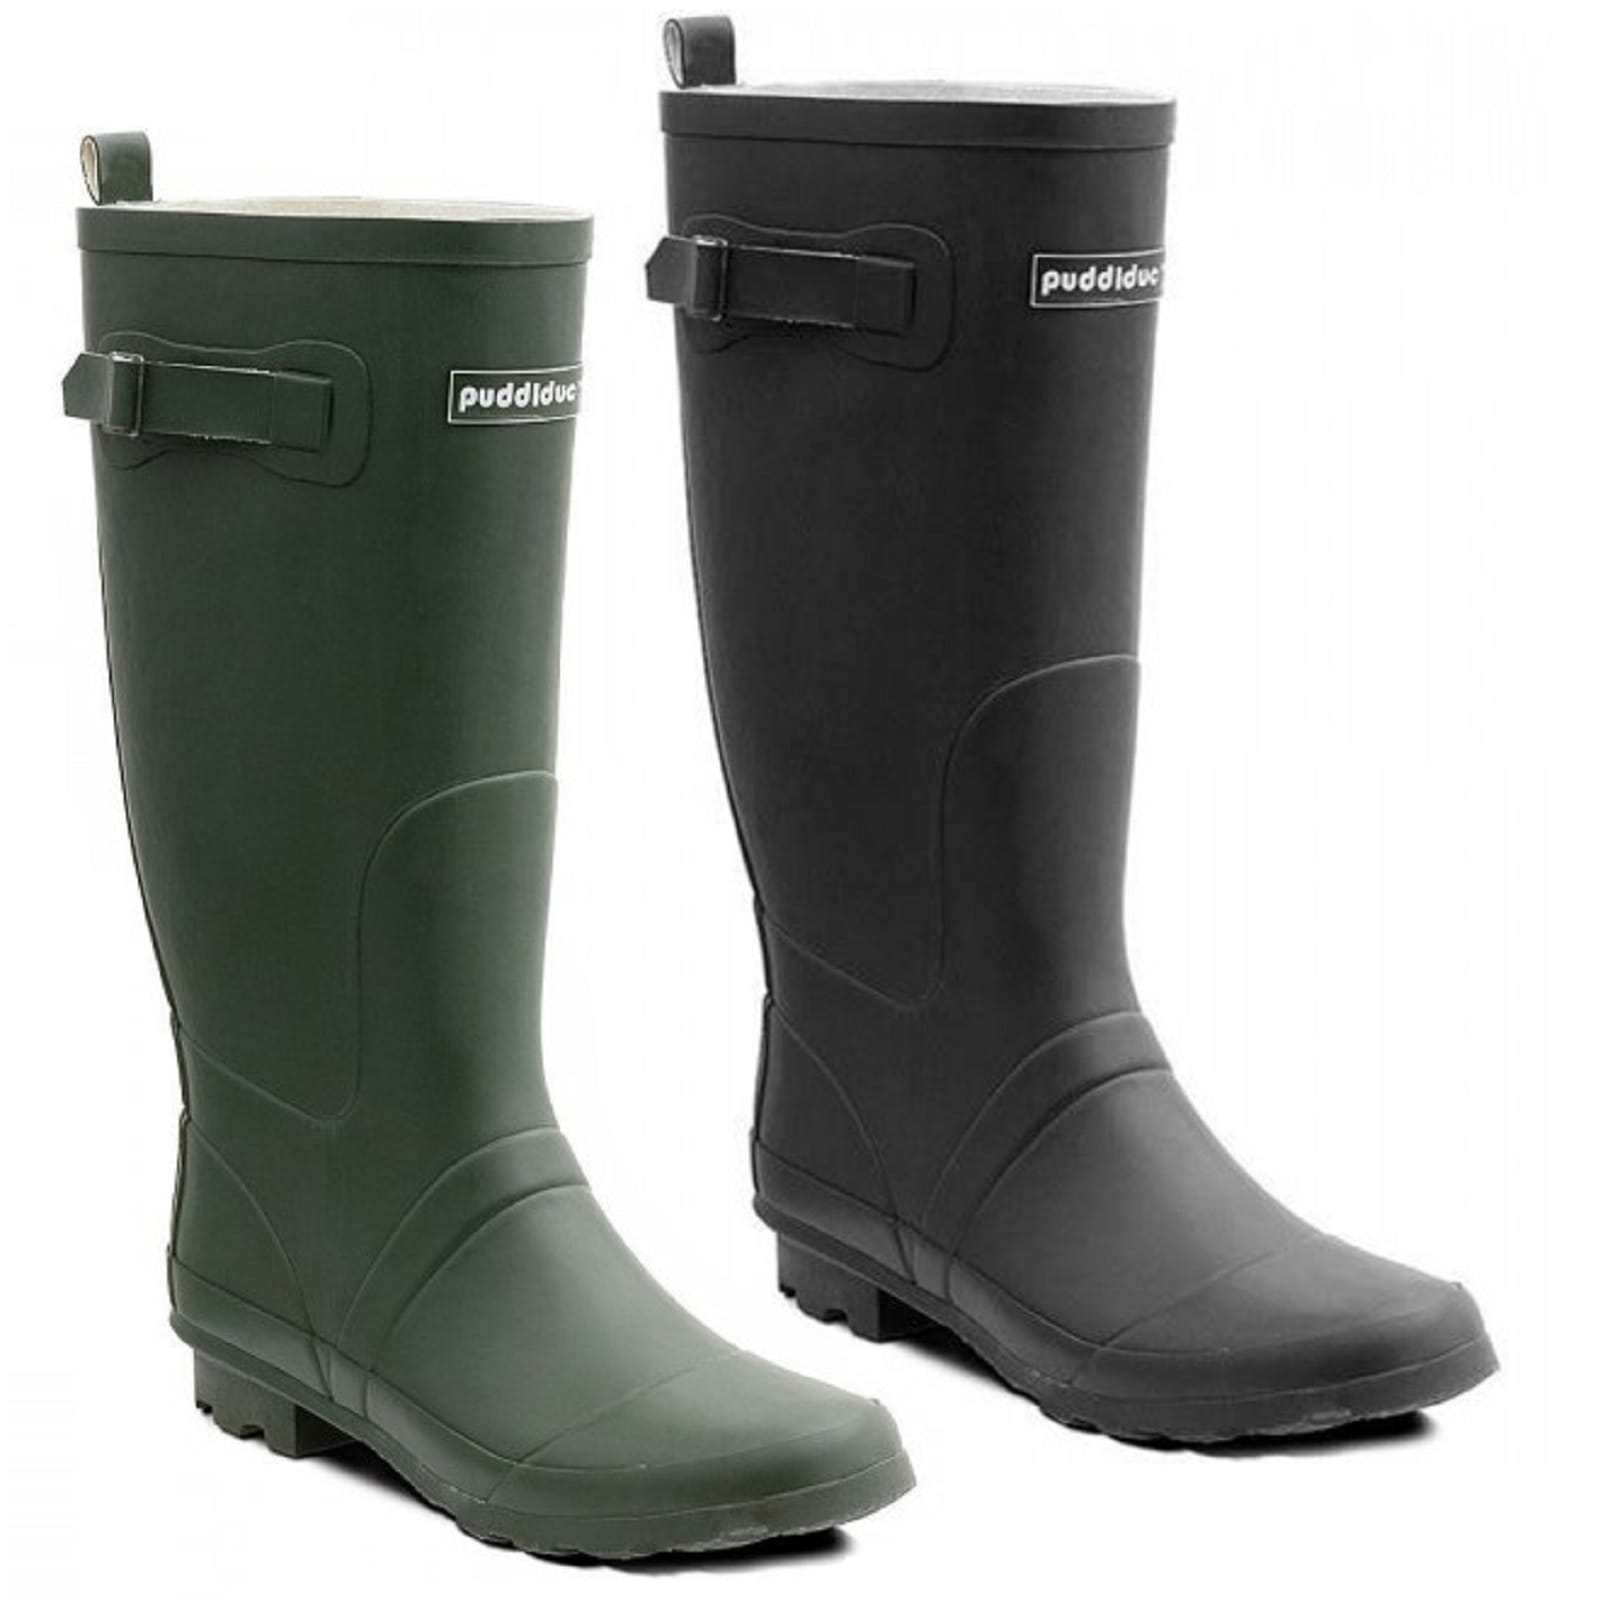 An Example Of Quality Rubber Wellies